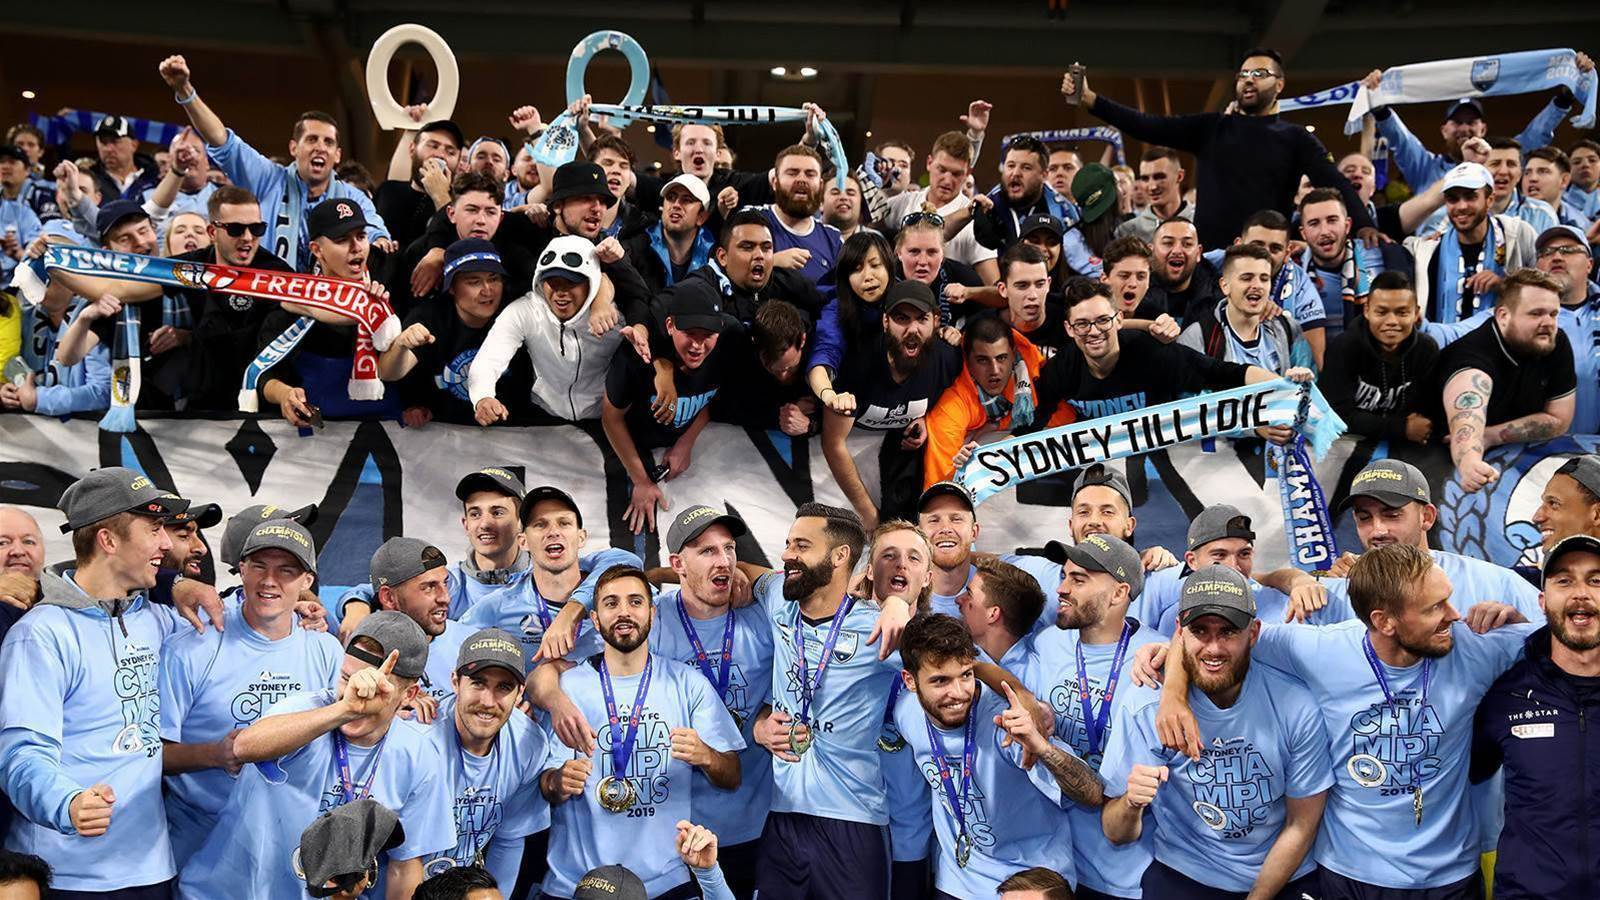 Sydney head home as A-League Champions